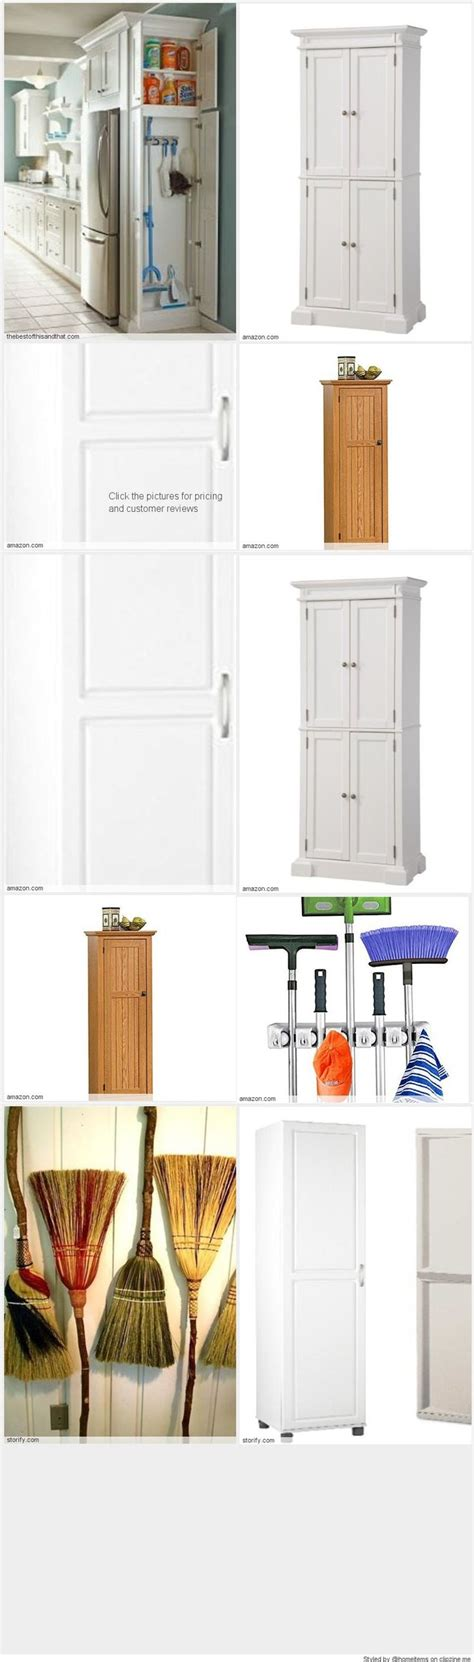 broom and mop cabinet the 22 best images about free standing broom closet